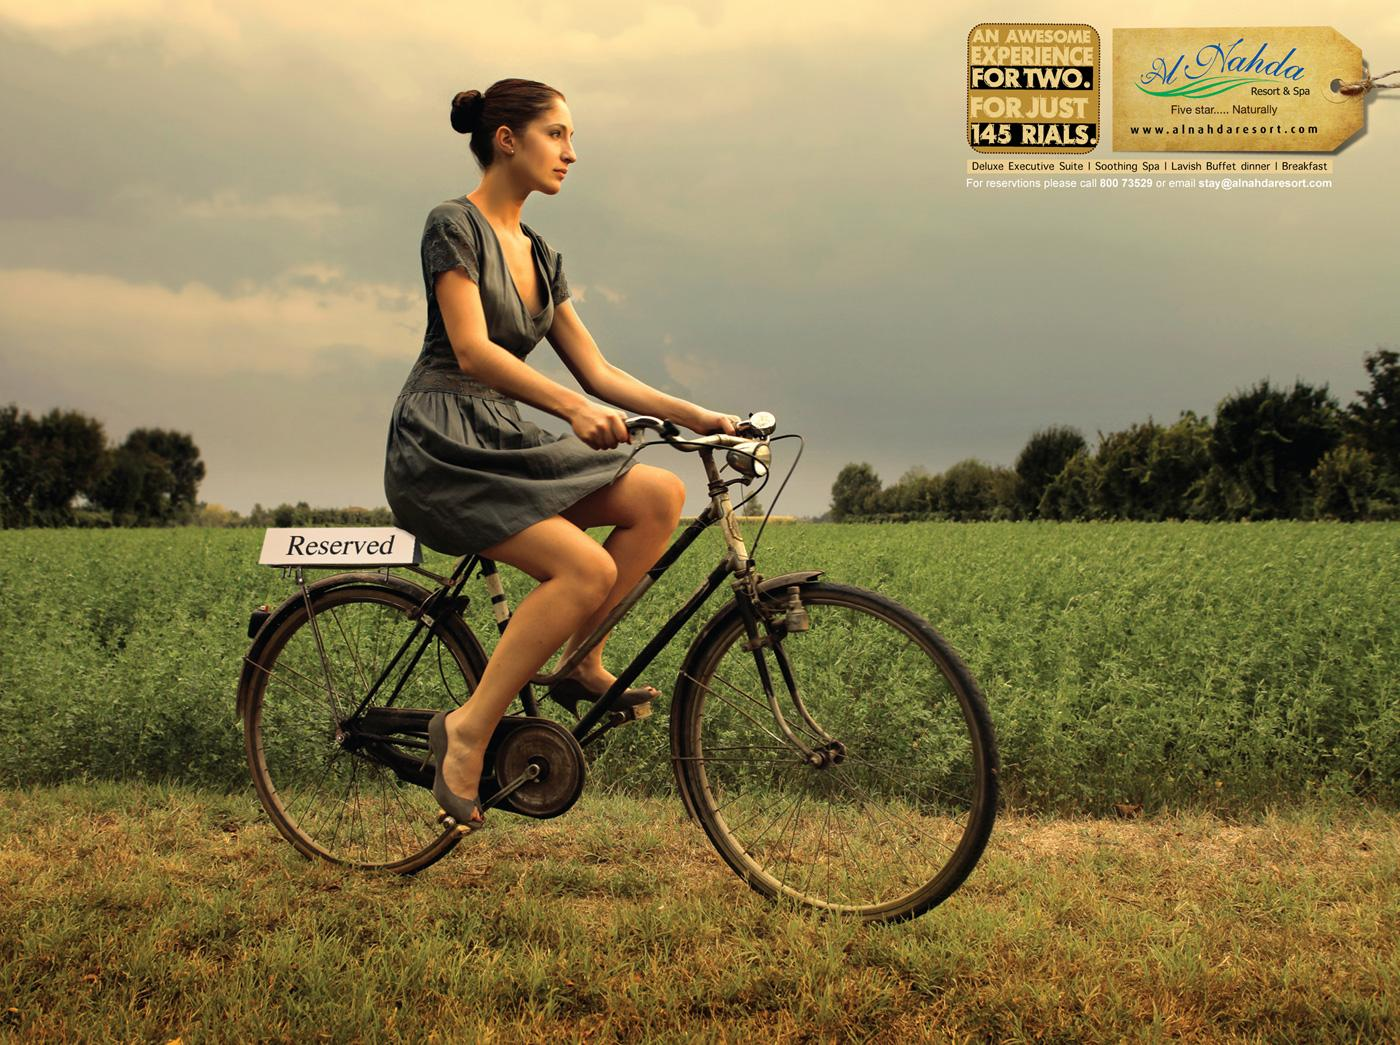 Al Nahda Resort & Spa Print Ad -  Cycle